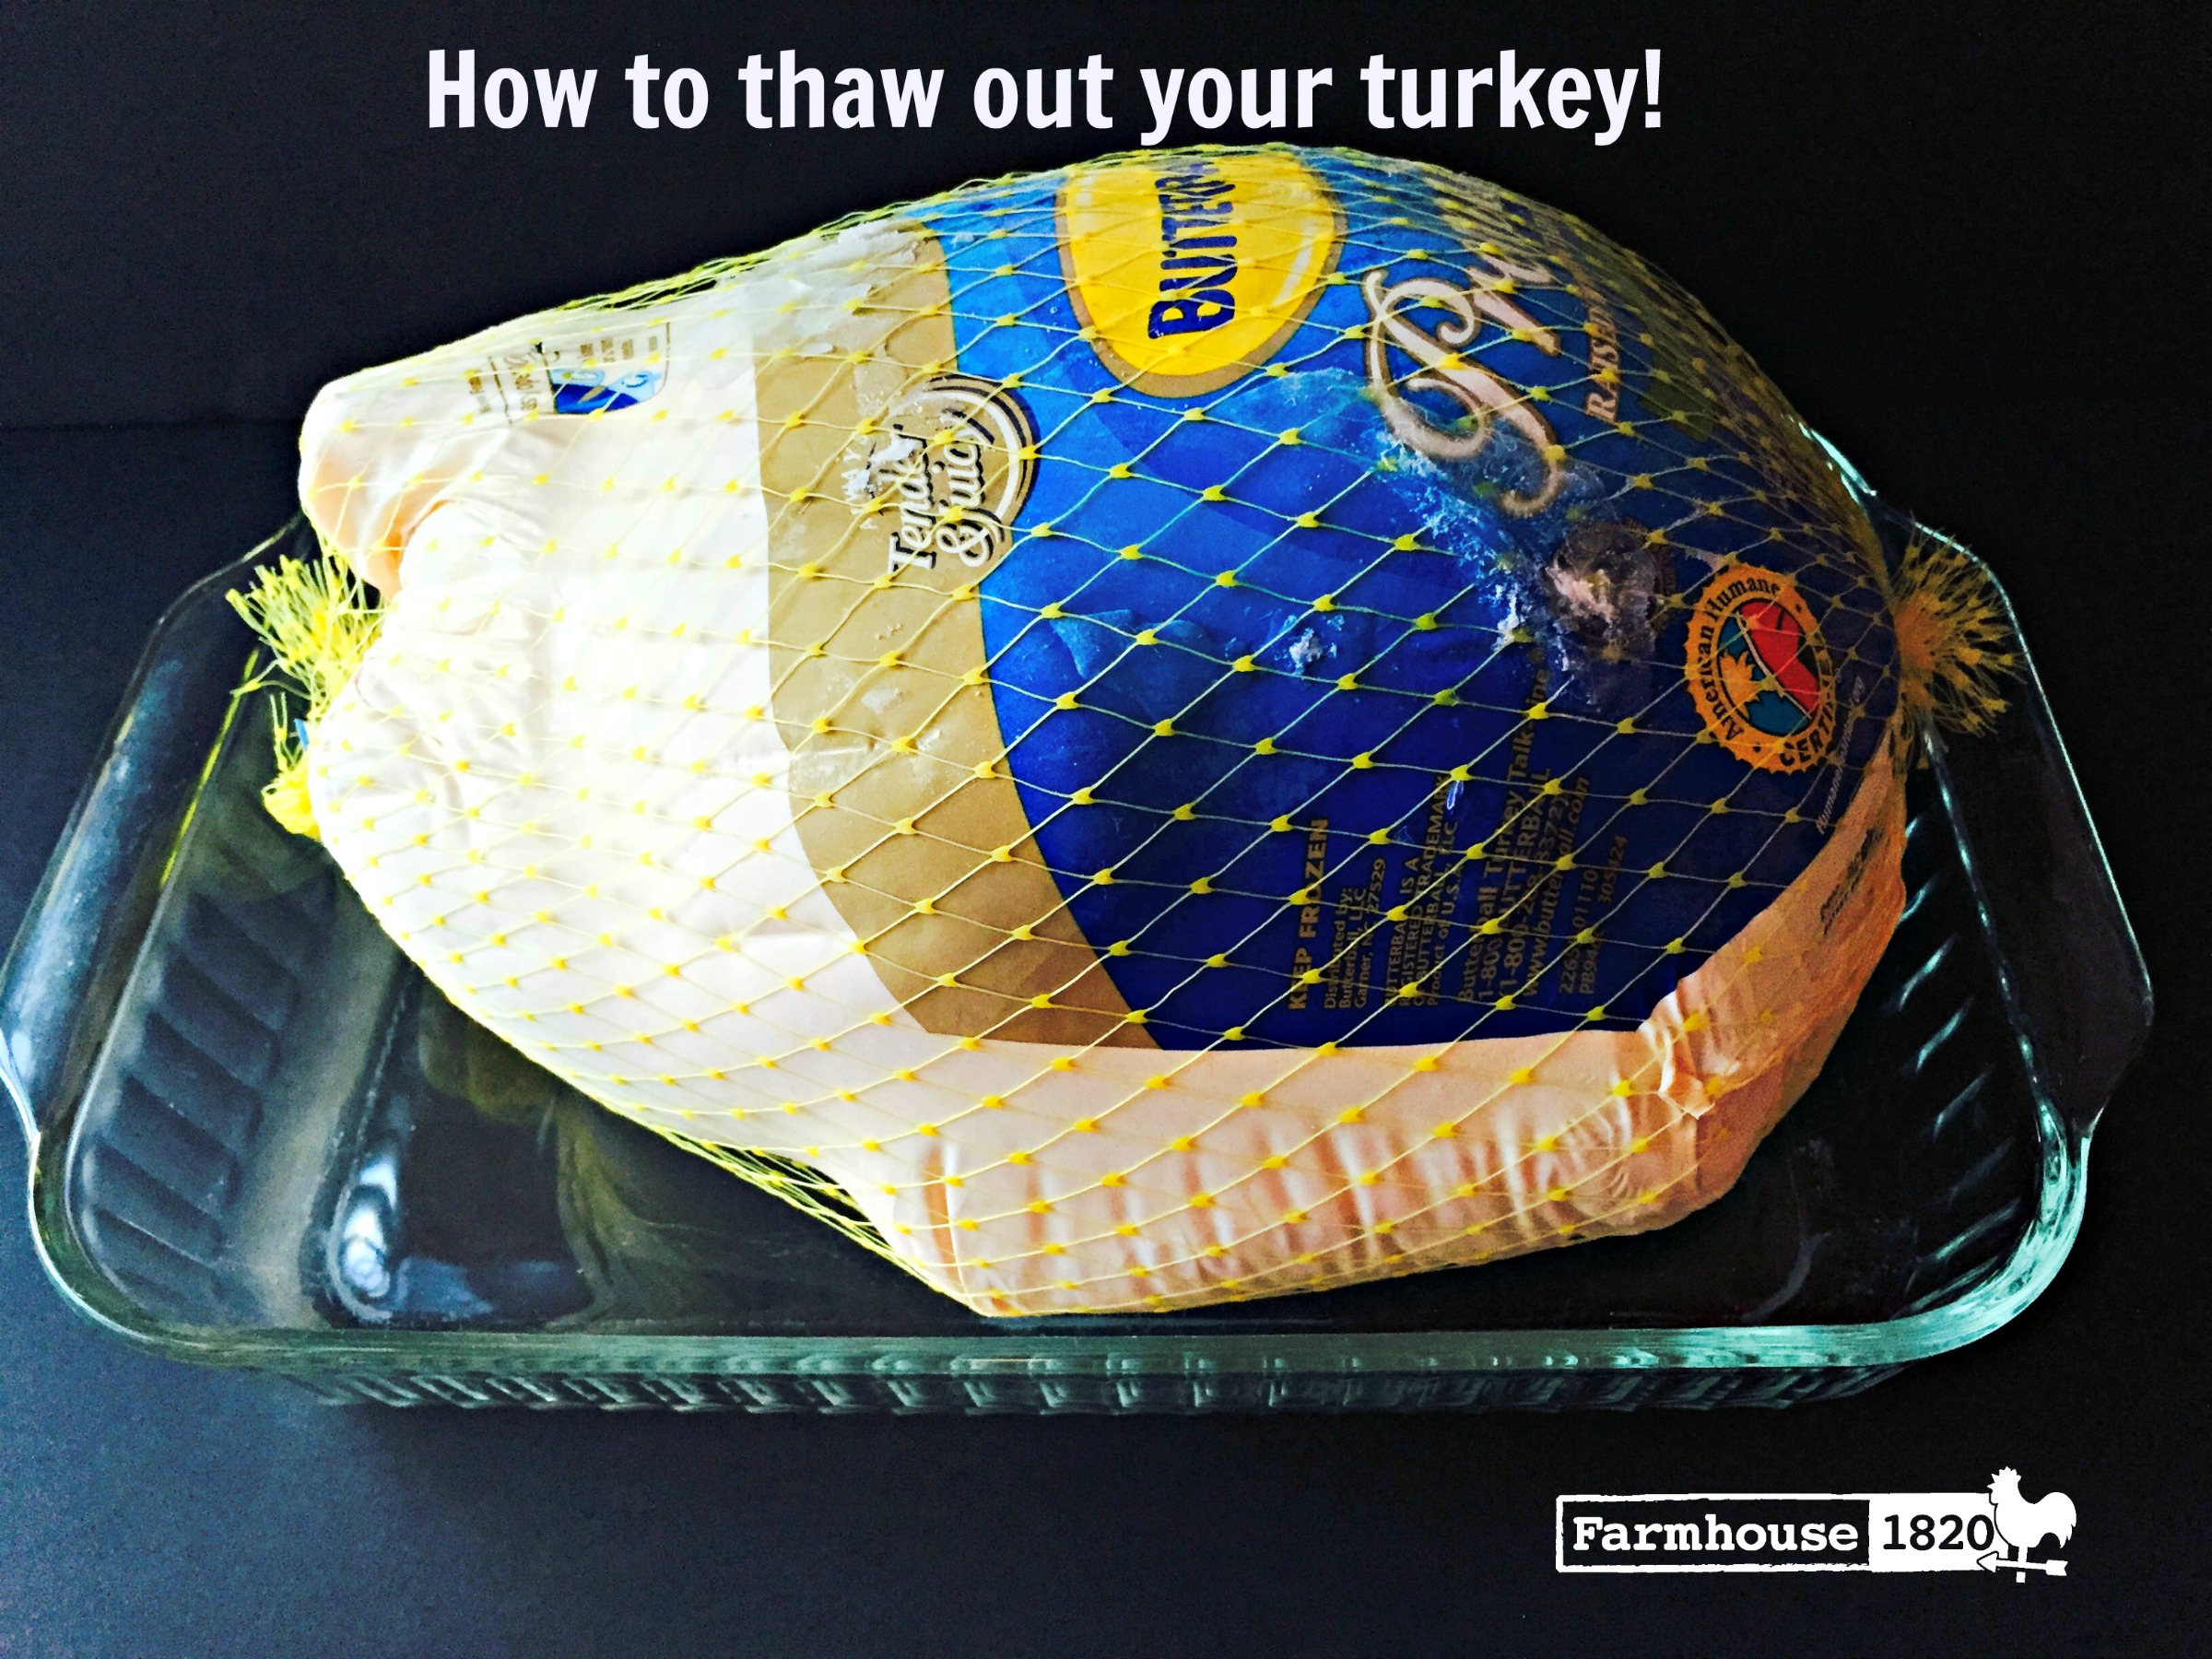 Turkey - how to thaw a frozen turkey